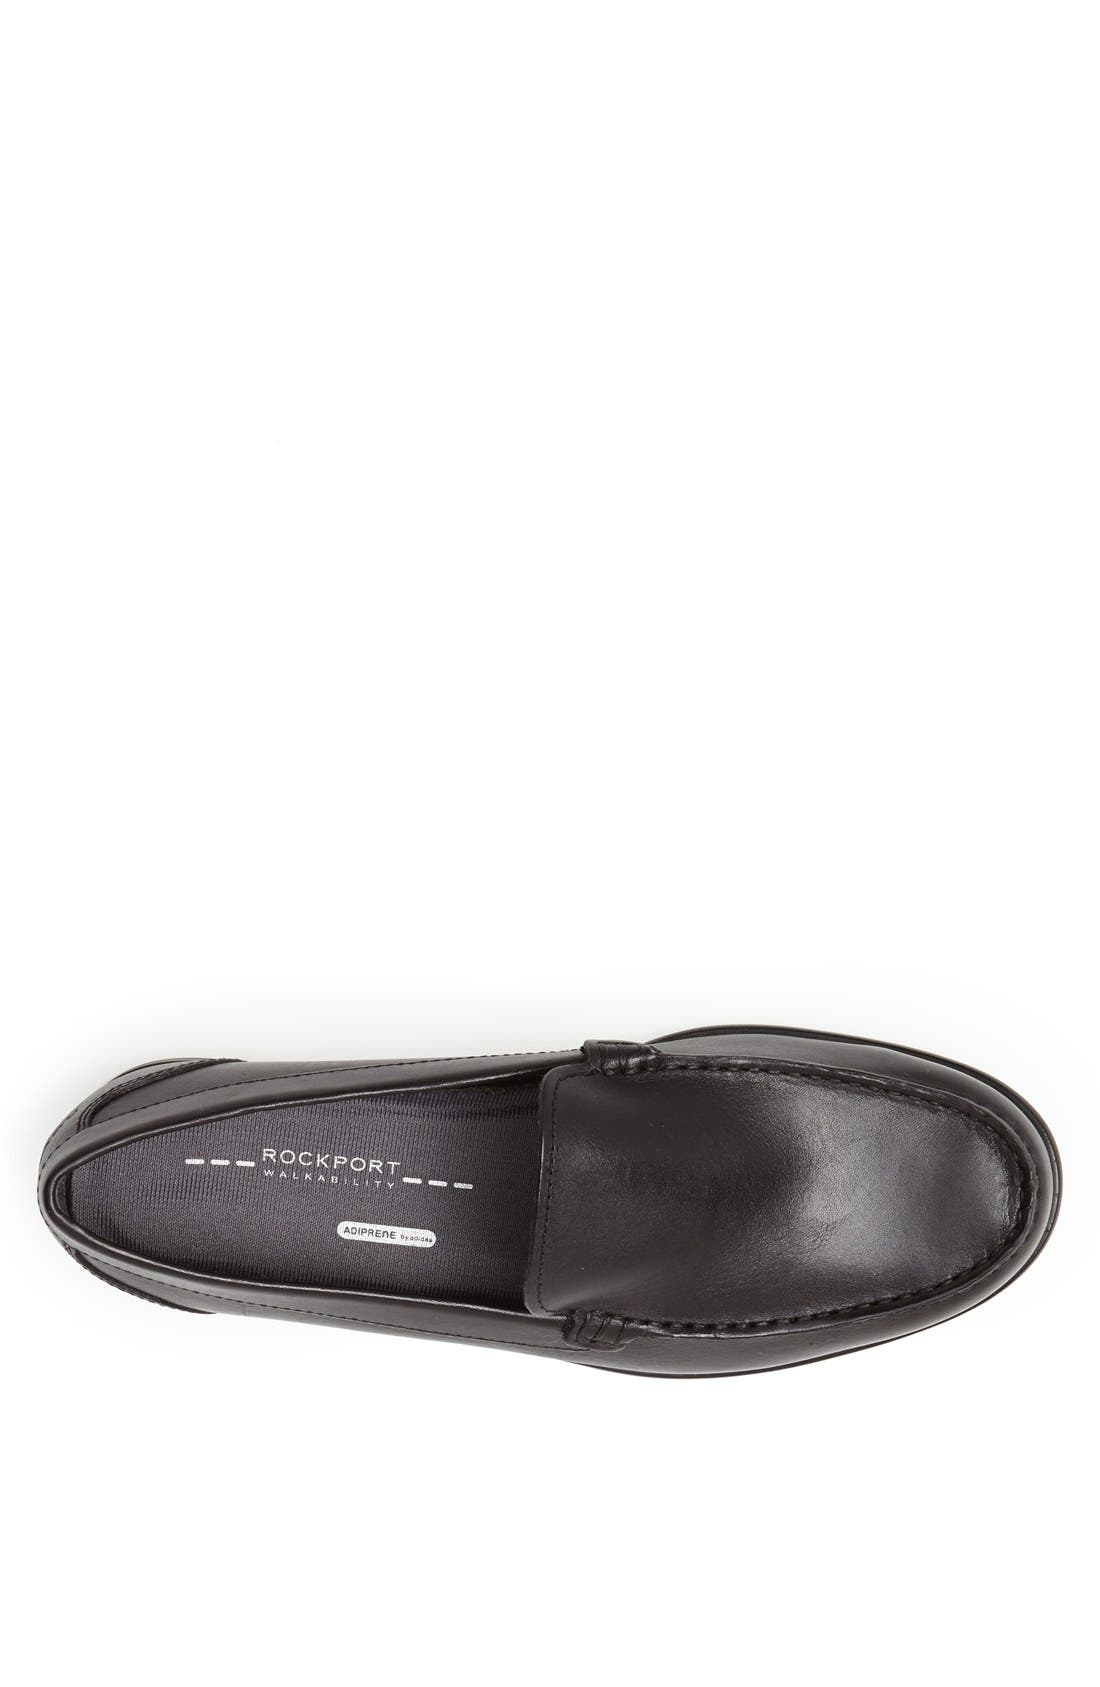 Alternate Image 3  - Rockport Classic Venetian Loafer (Men)